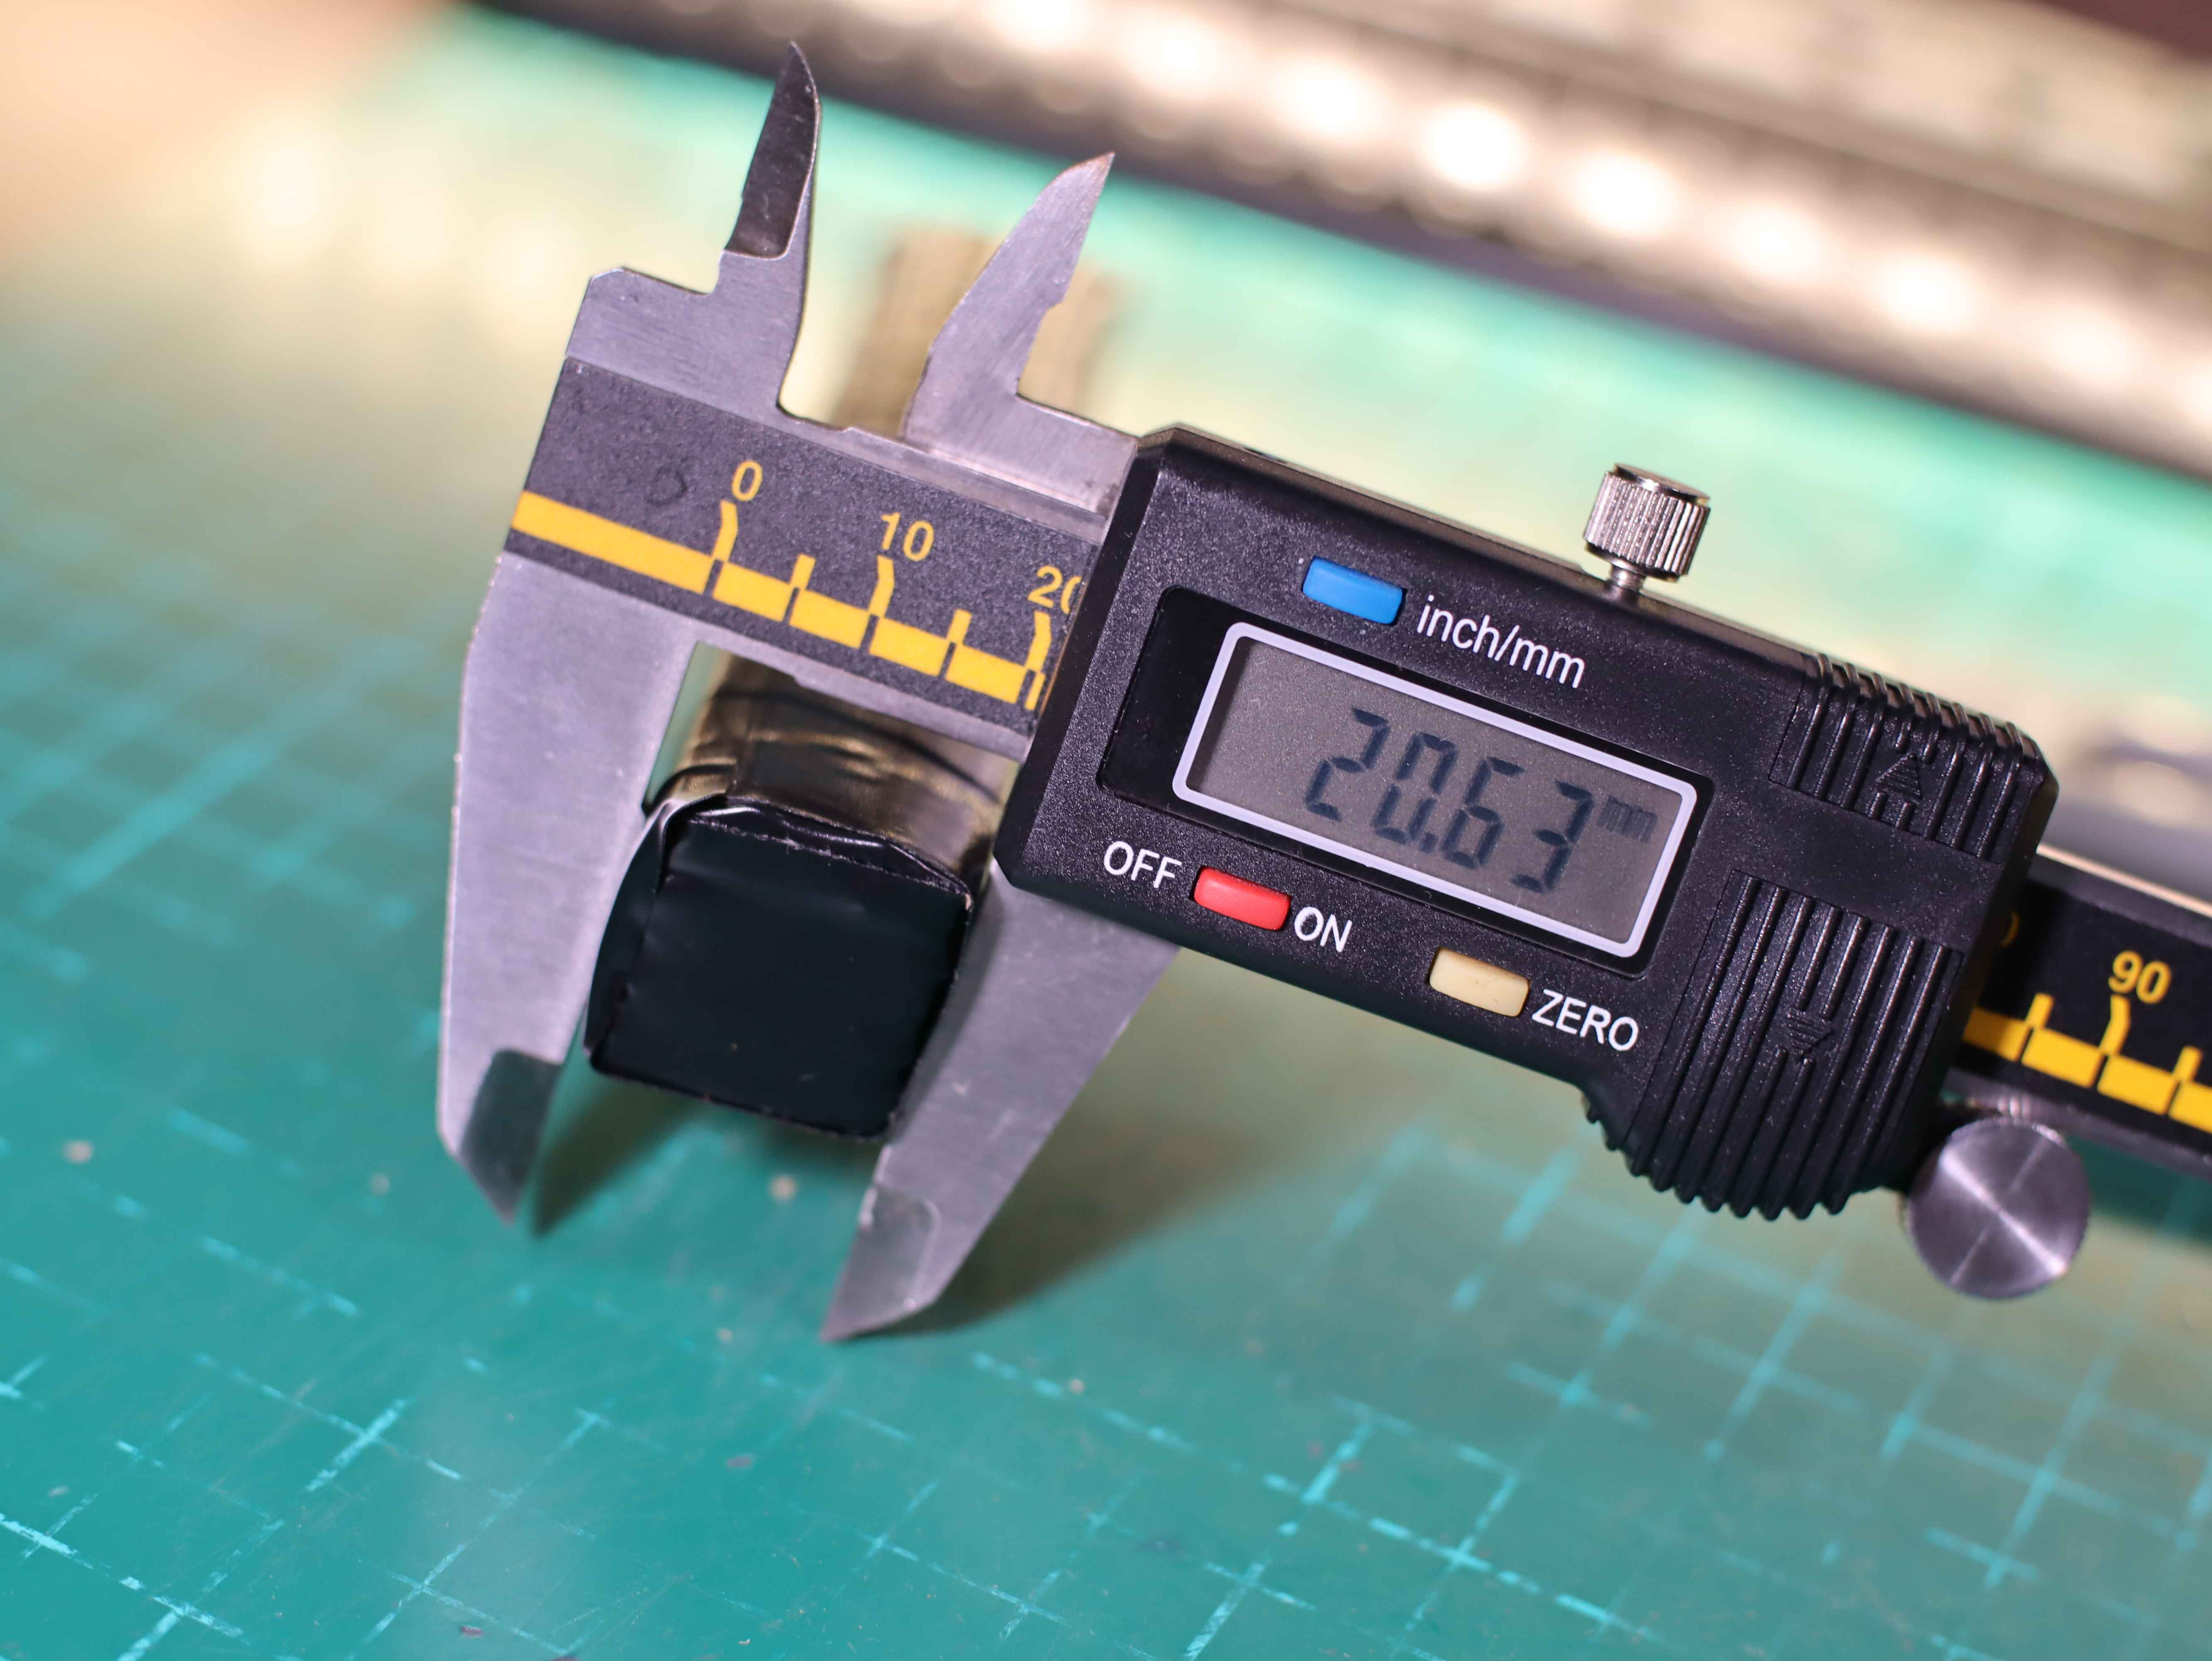 Re-measure the thickness of the battery from the cardboard. Electronic caliper and model covered with insulating tape.